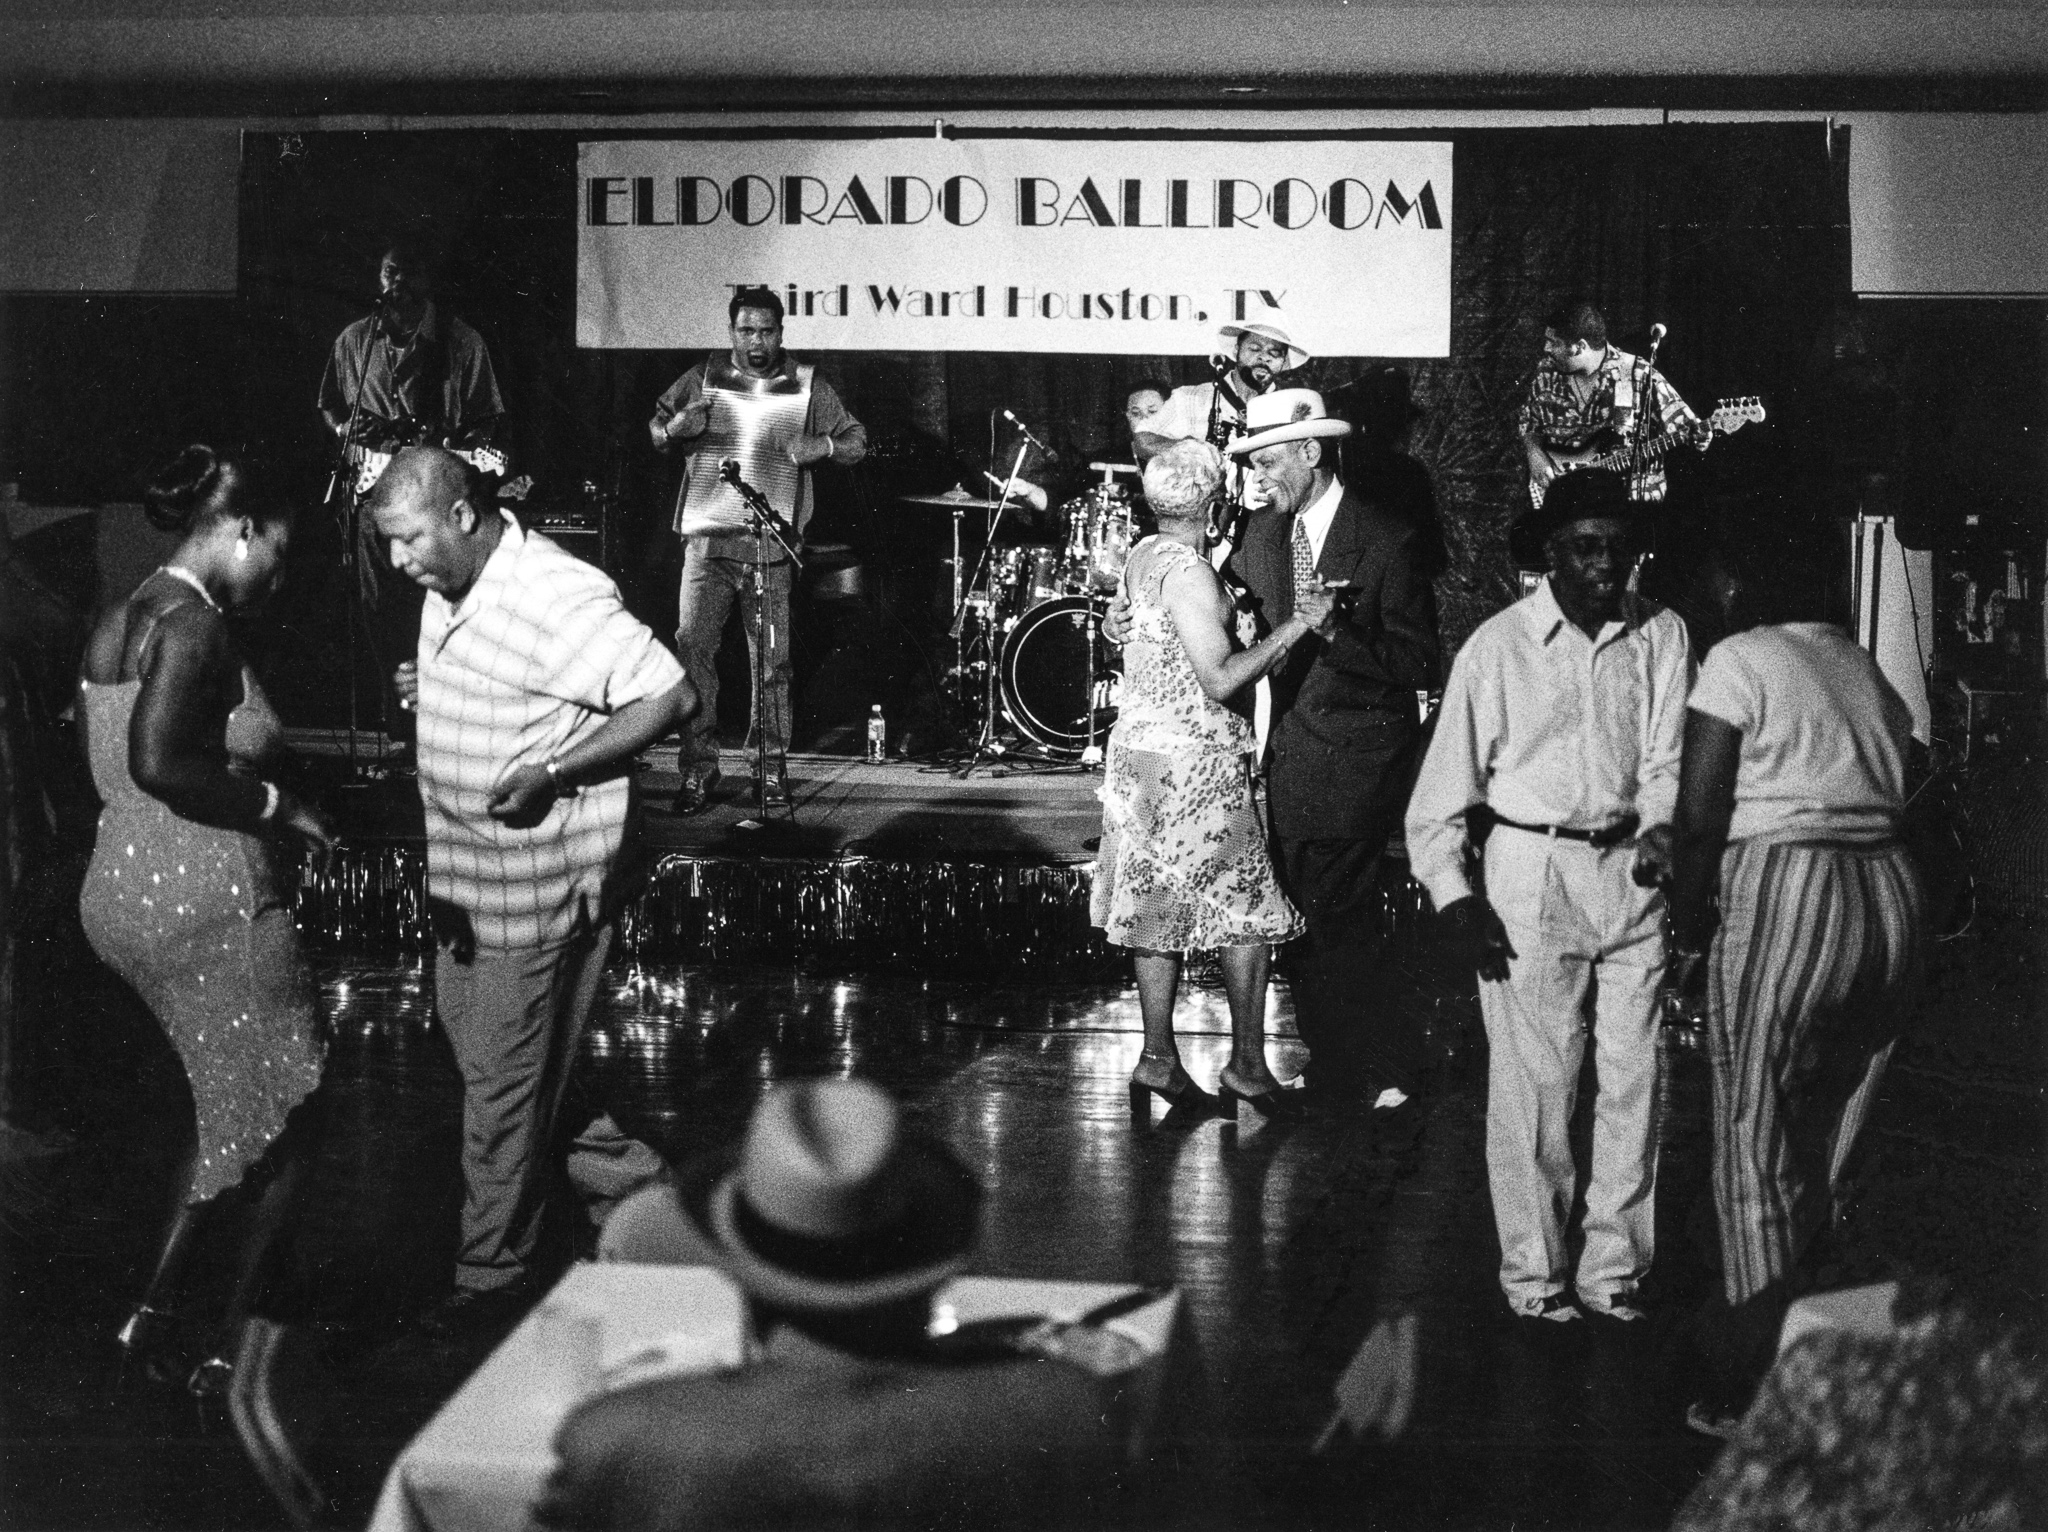 "Juneteenth Dance (with Step Rideau and the Zydeco Outlaws), Eldorado Ballroom, Houston, Texas, 2003. (Photograph by James Fraher, from the books ""Texas Zydeco"" and ""Down in Houston: Bayou City Blues"" by Roger Wood, University of Texas Press)"